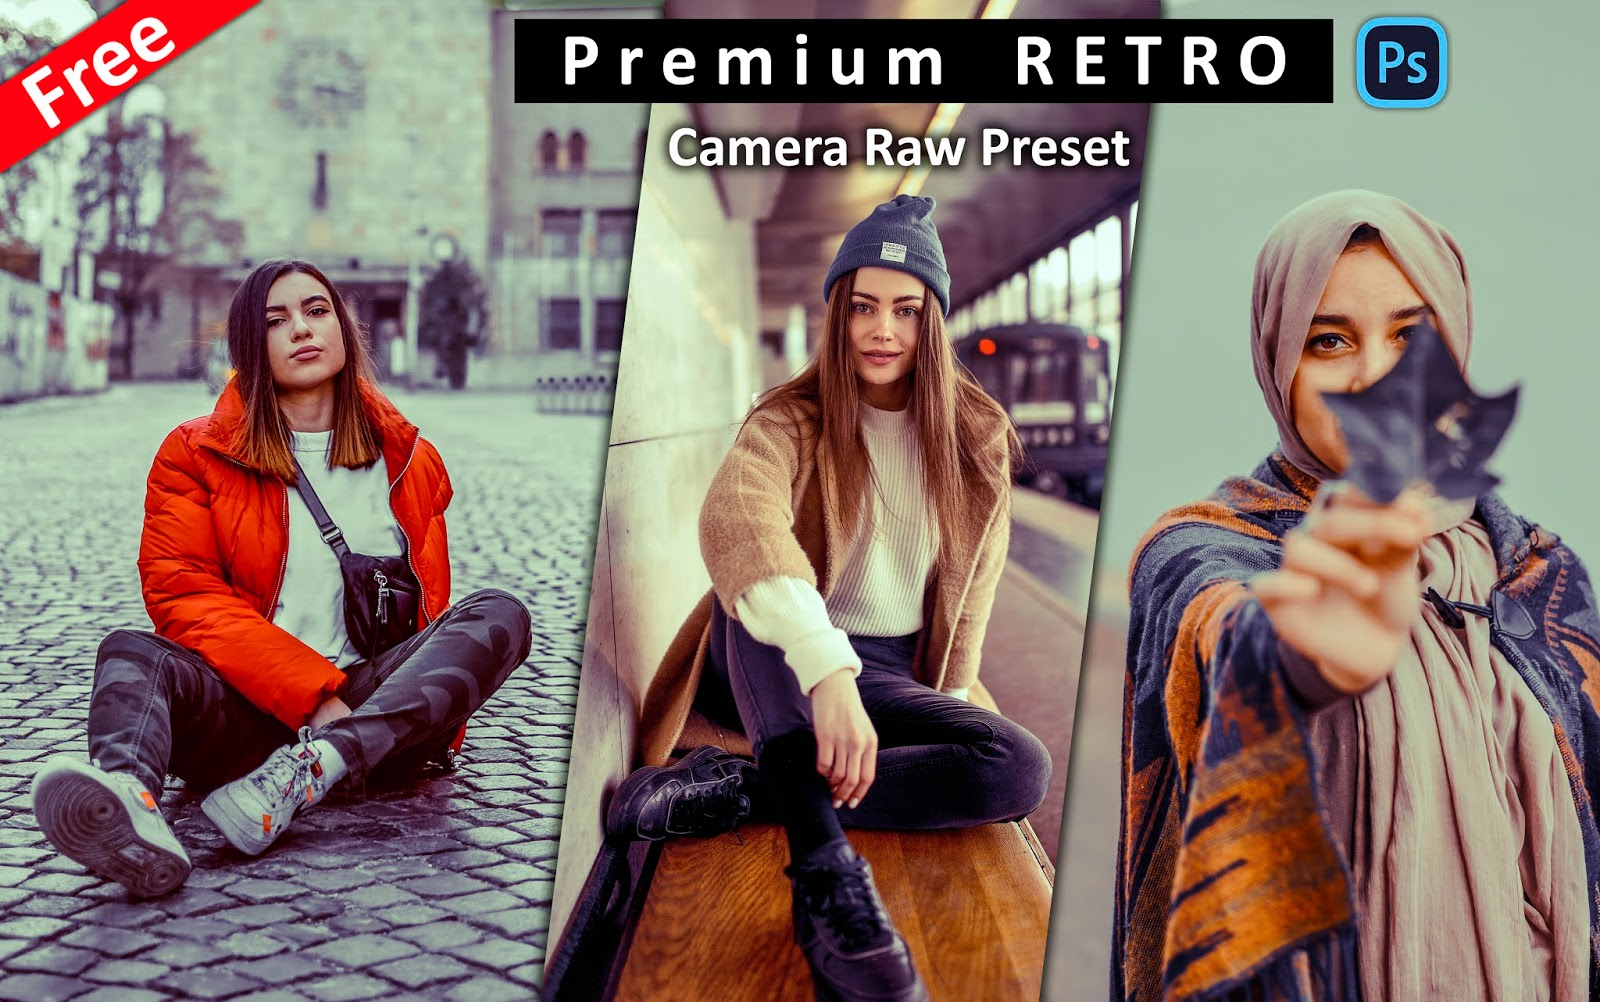 Download Premium RETRO Camera Raw Preset for Free | How to Make Retro Effect in Photoshop